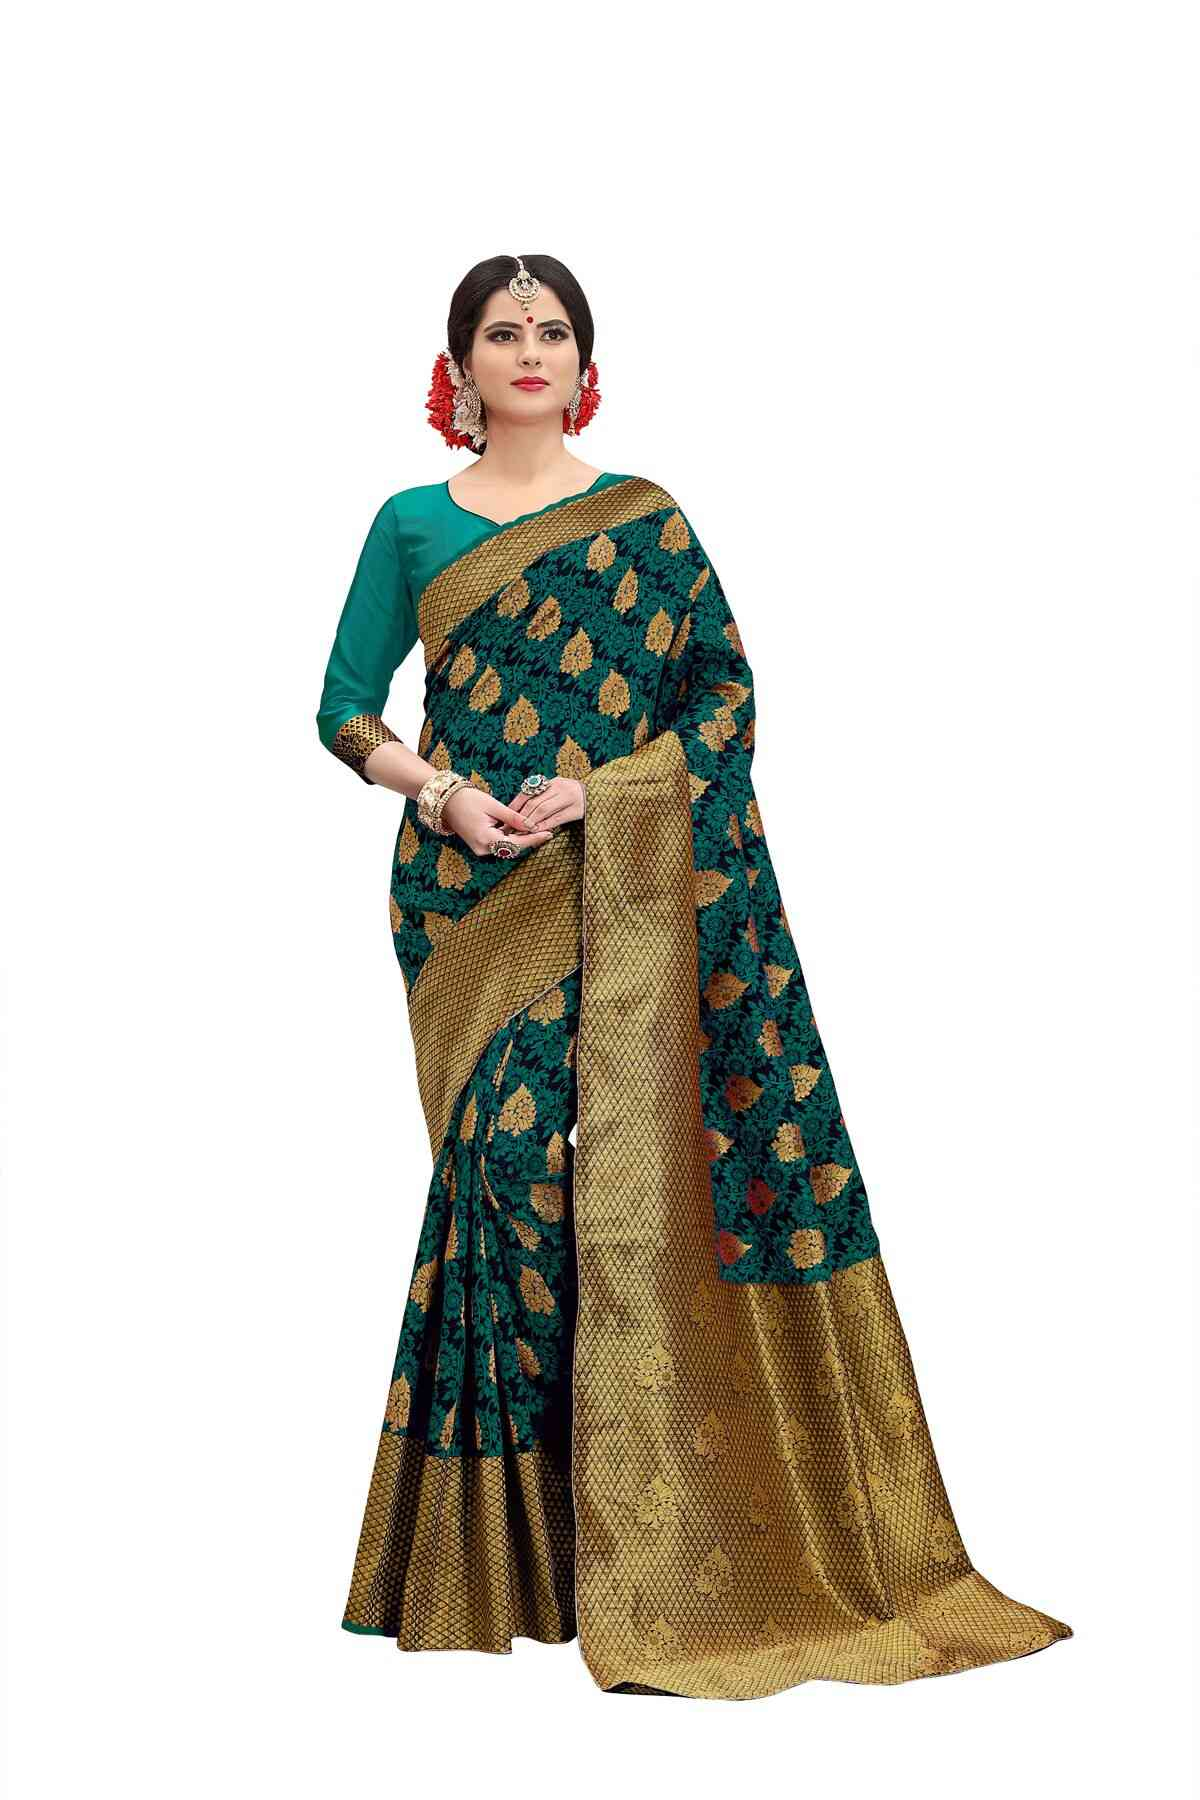 Beautiful Green Colored Jacquard Silk Saree pari SD1010  30""